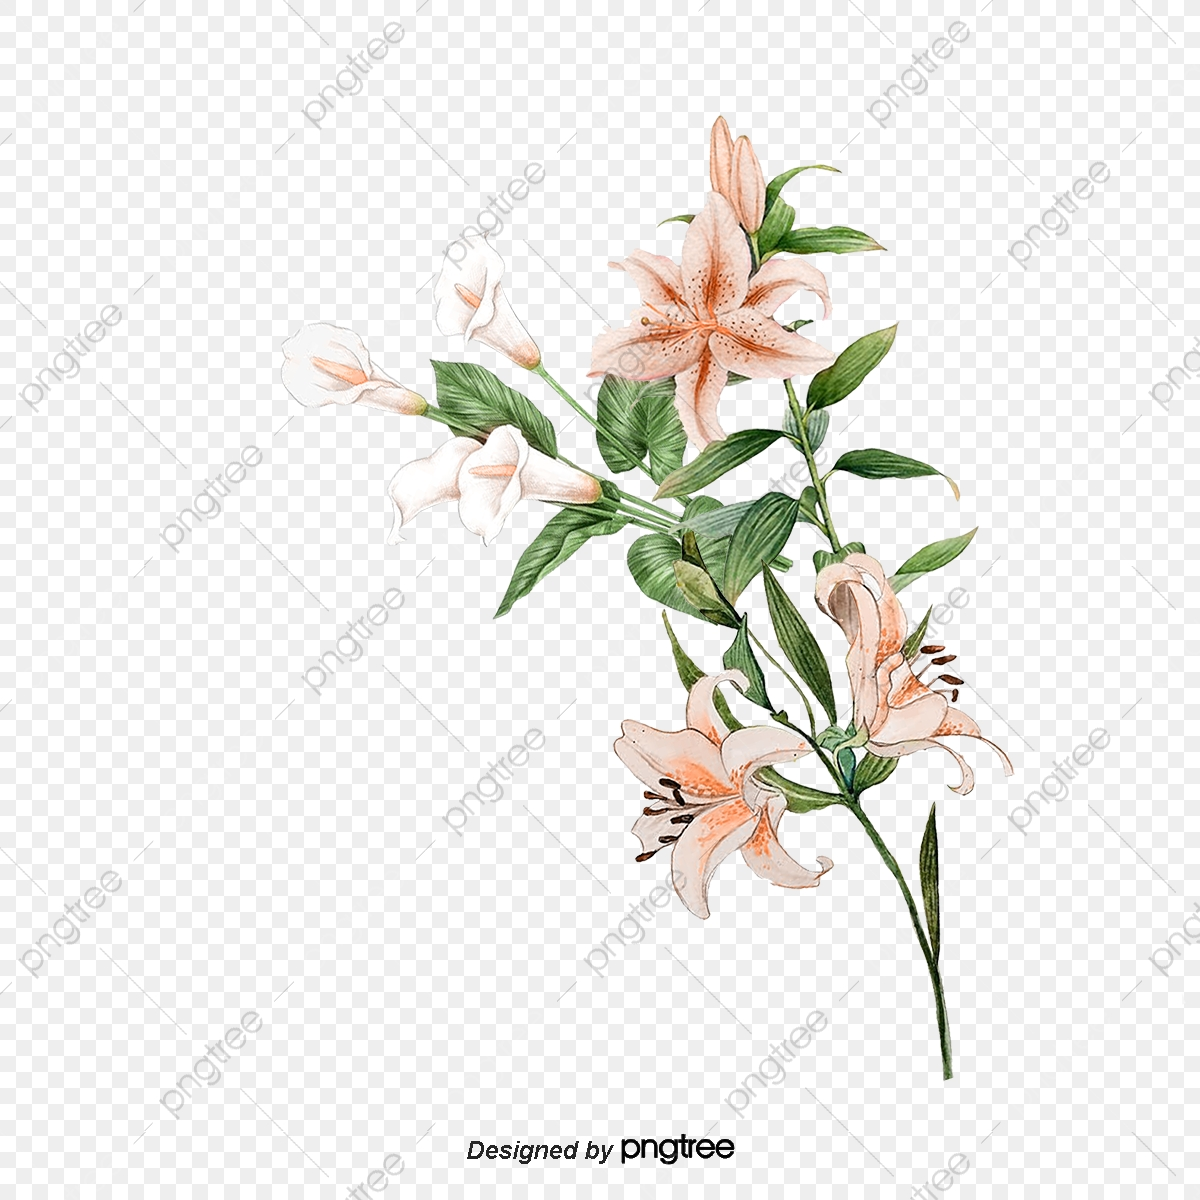 Hand painted png transparent. Lily clipart elegant